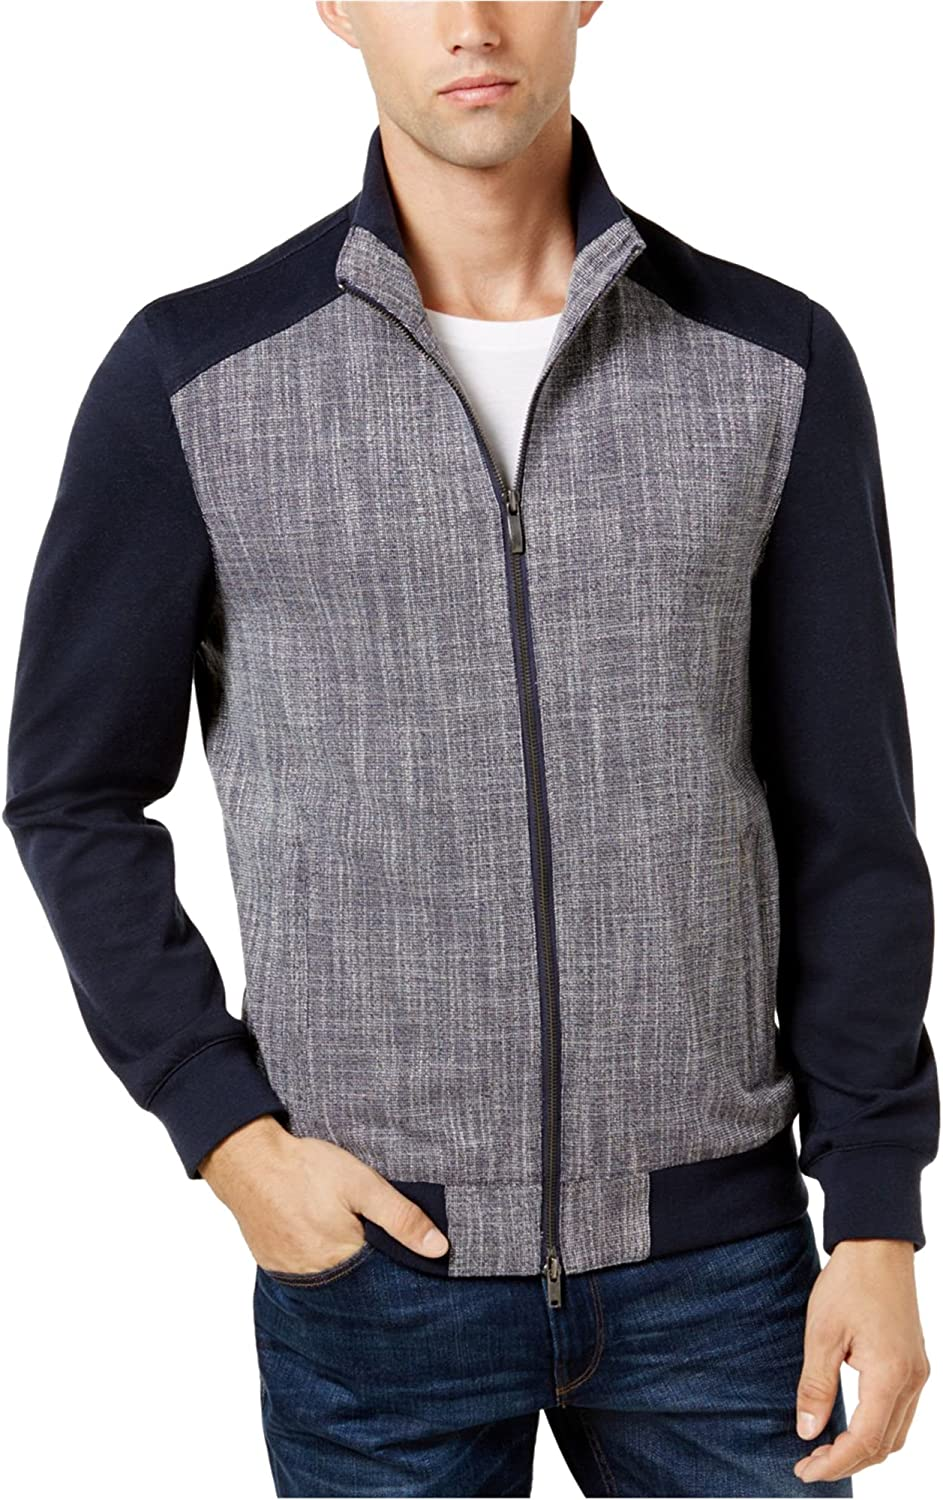 Vince Camuto Mens Scratch Weave Bomber Jacket, Blue, Small